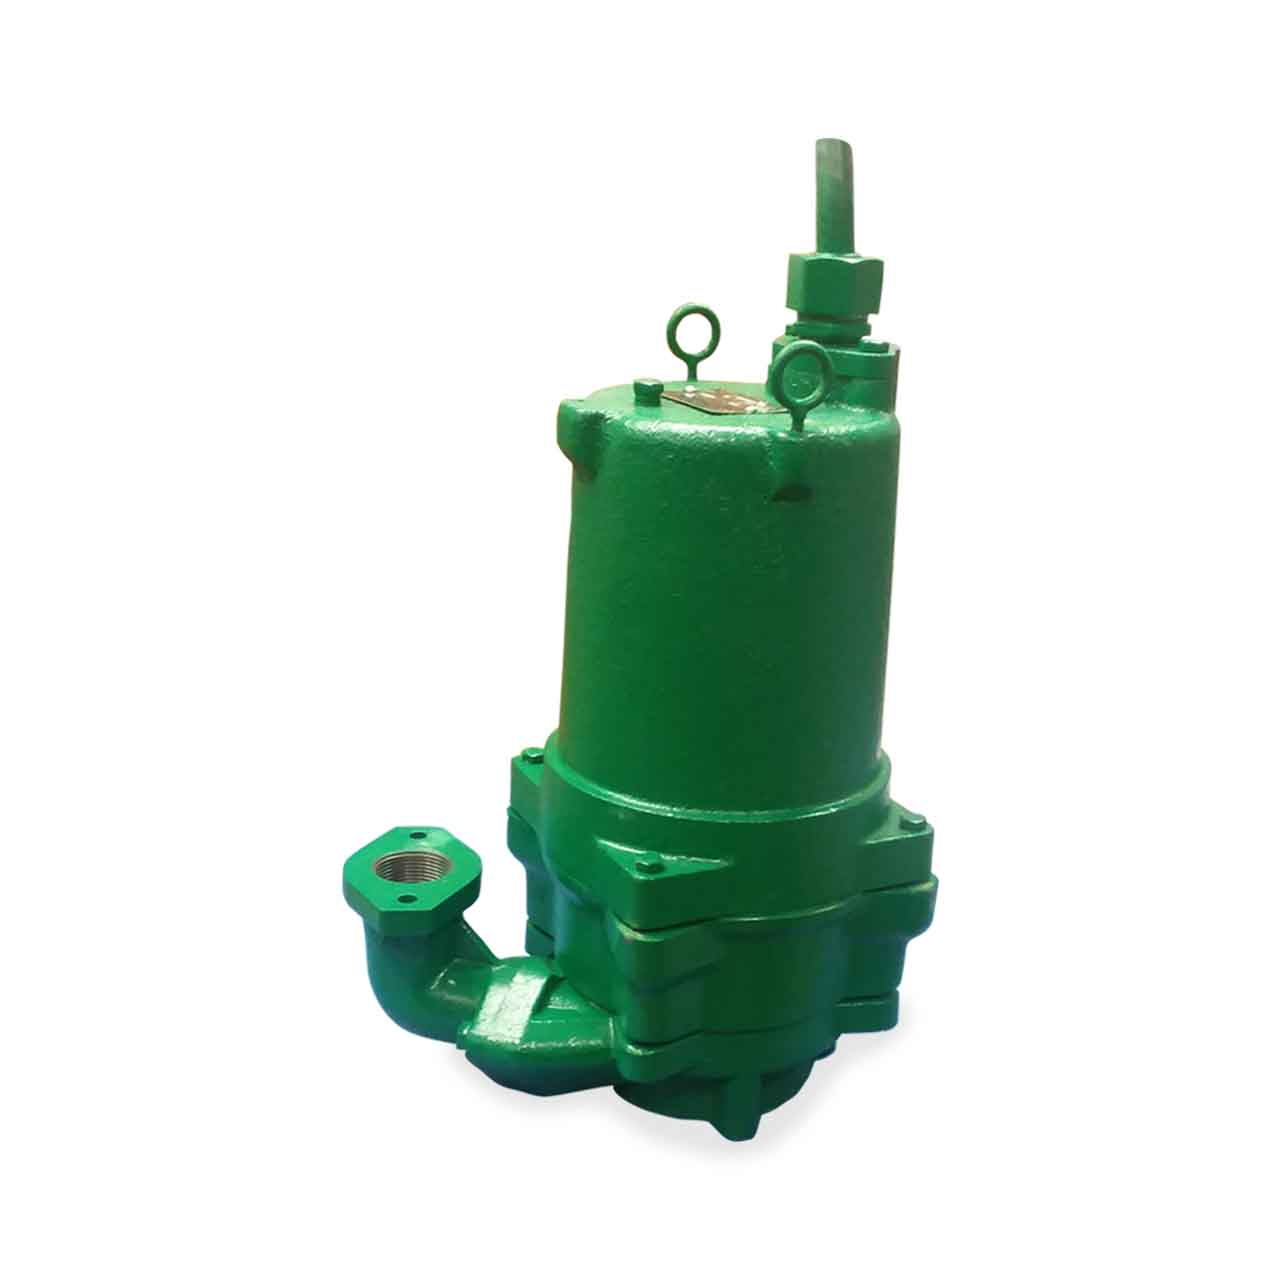 hight resolution of hydromatic pump hydromatic hpg200m2 2 submersible sewage grinder pump 2 0 hp 230v 1ph manual 4 5 imp 20 cord htc526030107